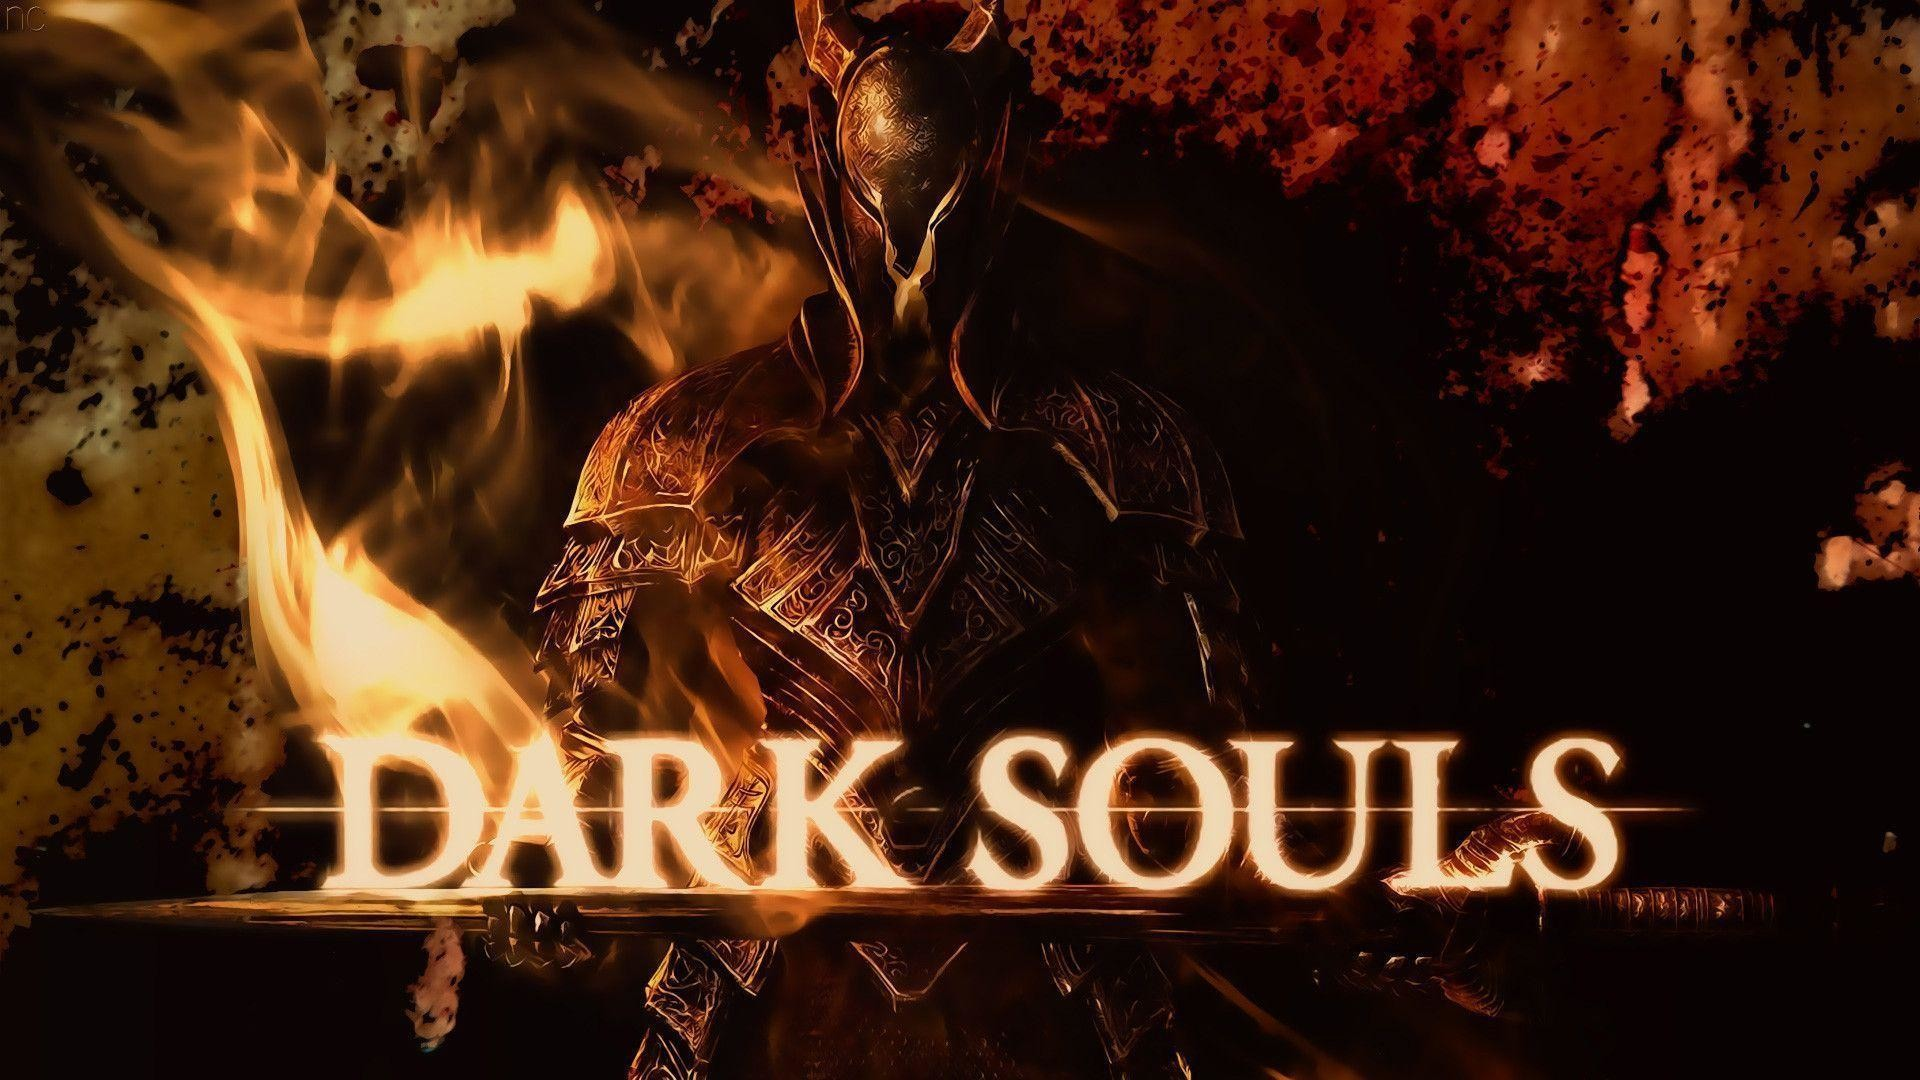 1920x1080 09.05 - Top HDQ Dark Souls Wallpaper 1366x768